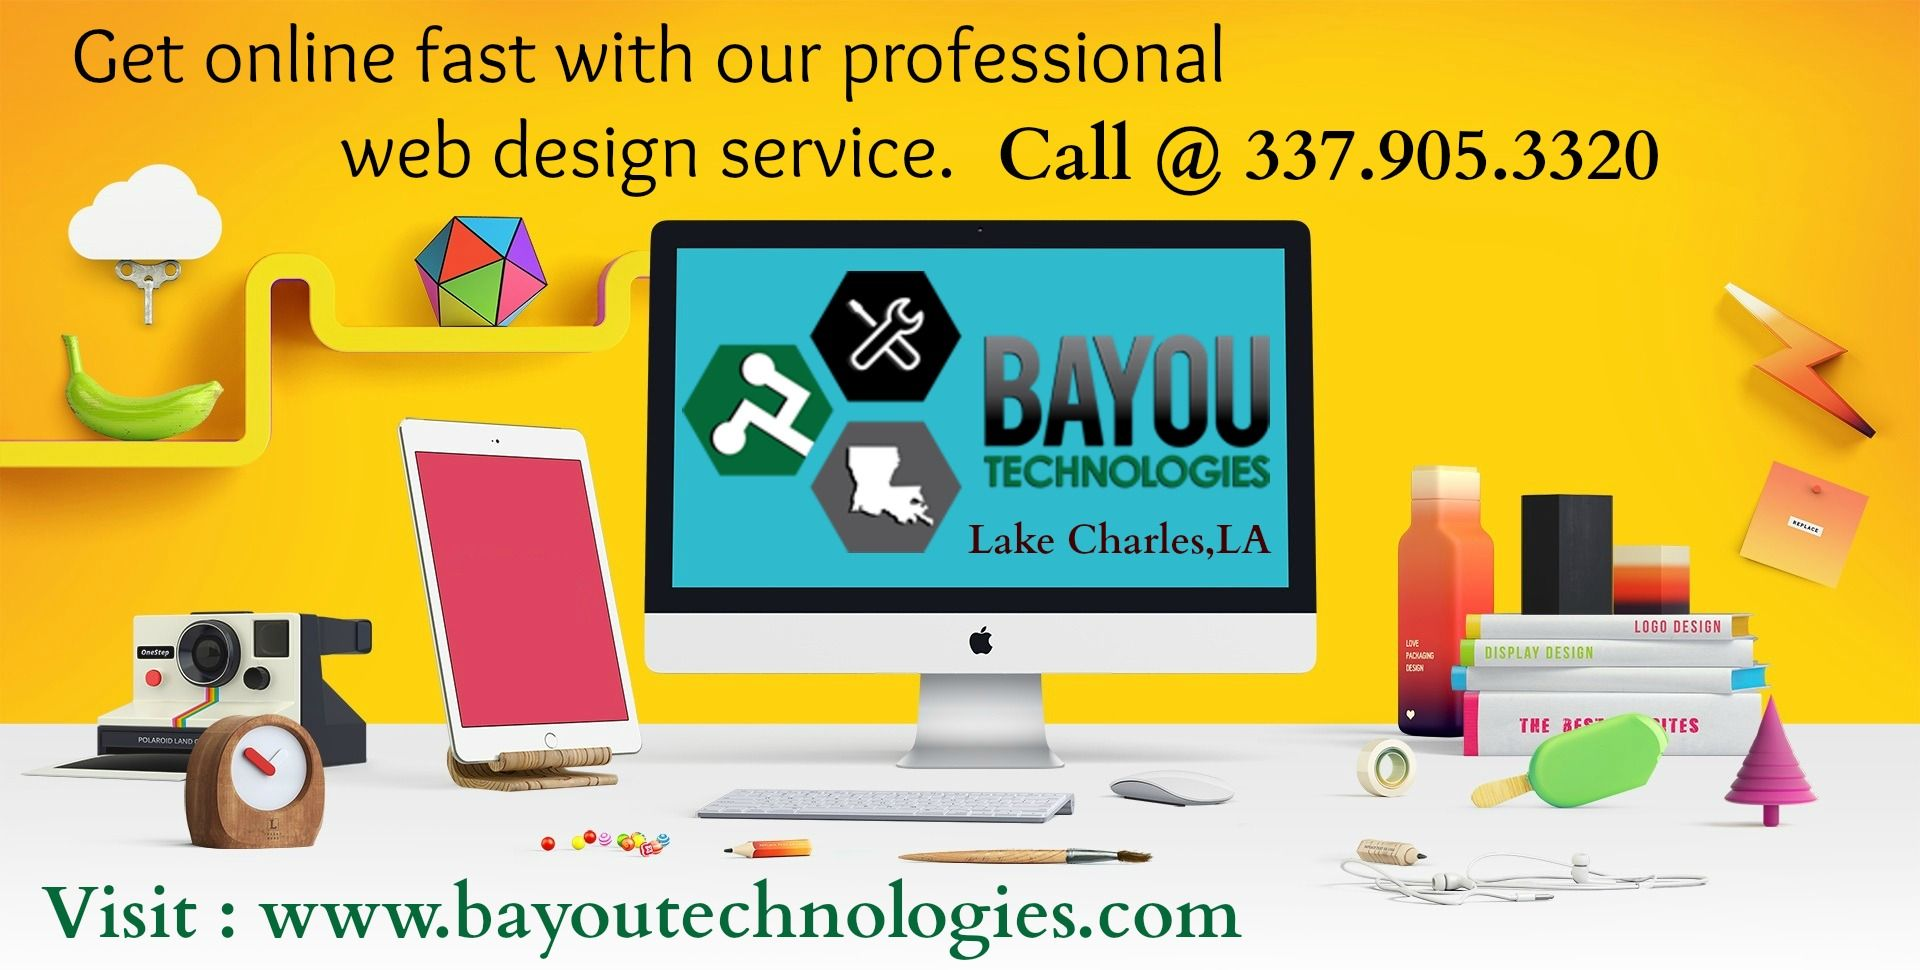 Web design and marketing solutions for businesses of all